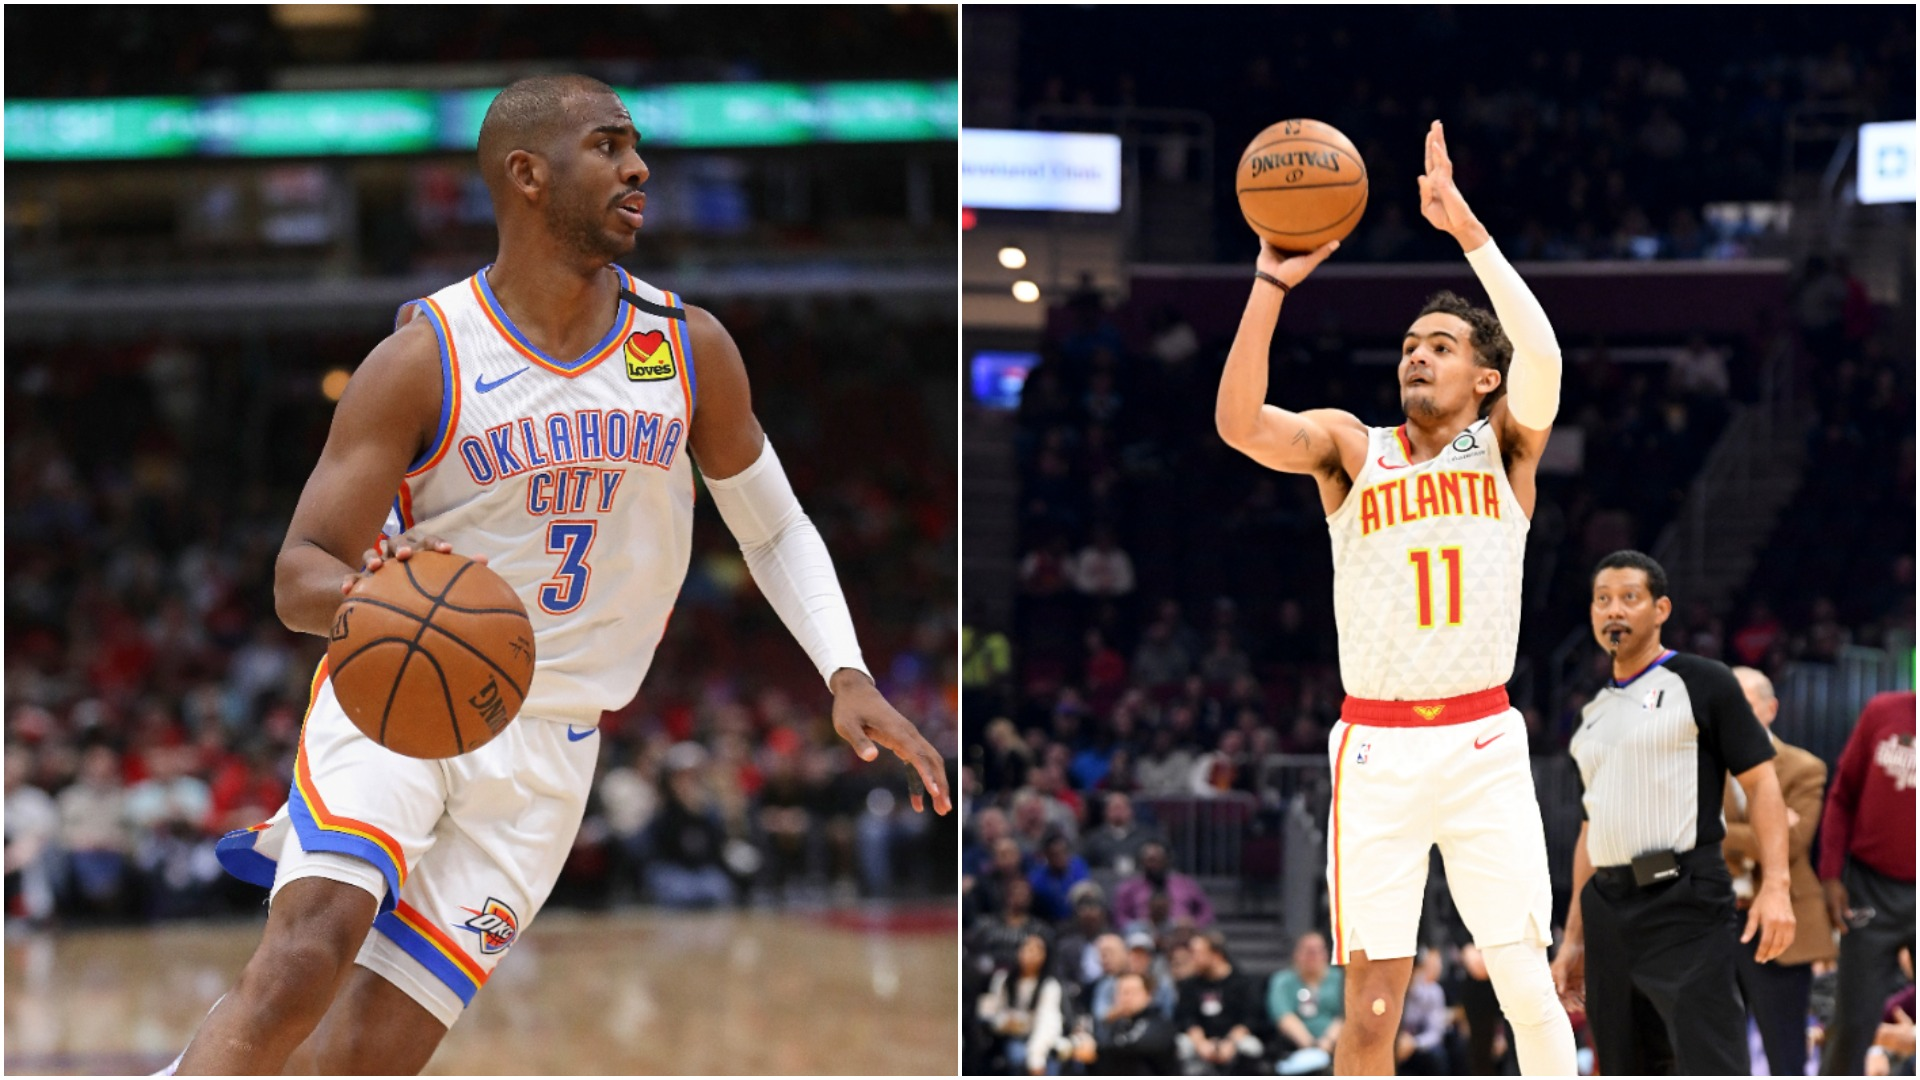 Chris Paul, Trae Young and Tamika Catchings are the standout names involved in what will be the first televised game of HORSE.